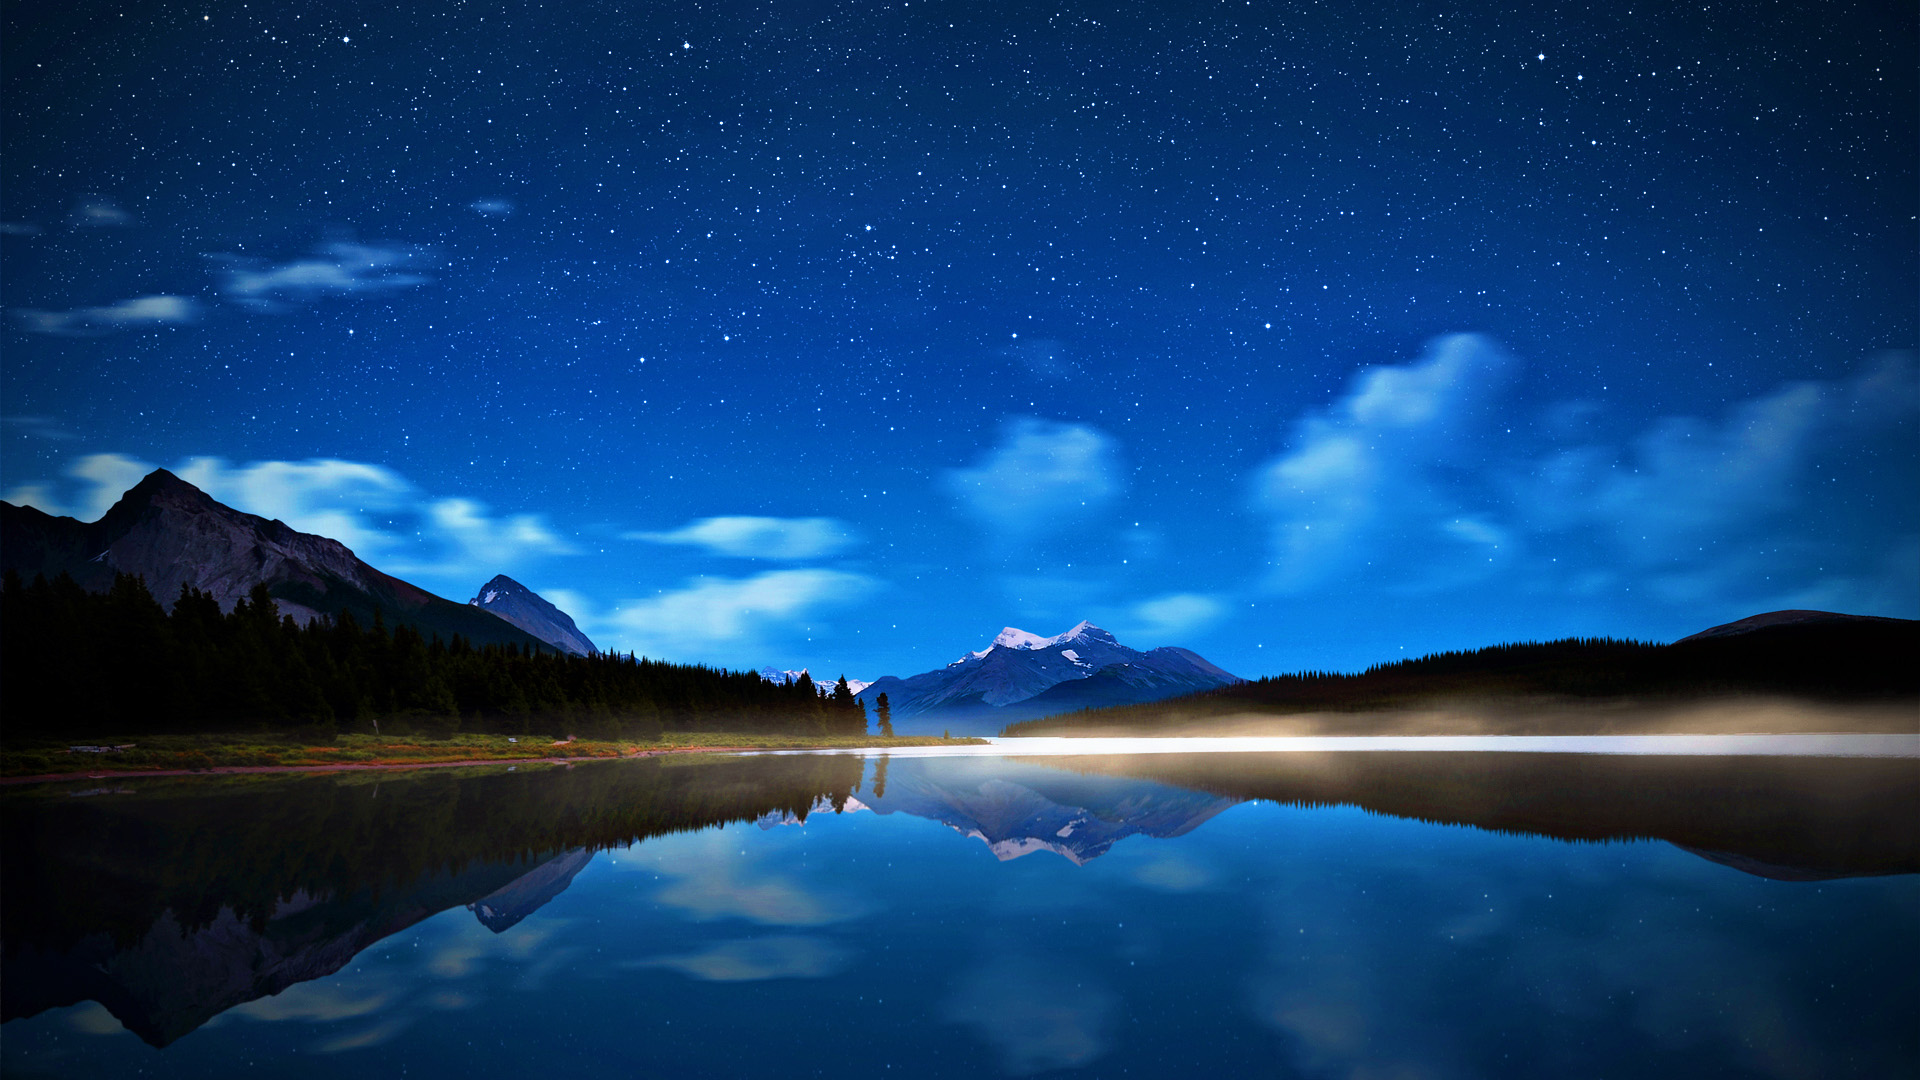 Full Screen Desktop Fall Wallpaper Night Sky Backgrounds Pixelstalk Net